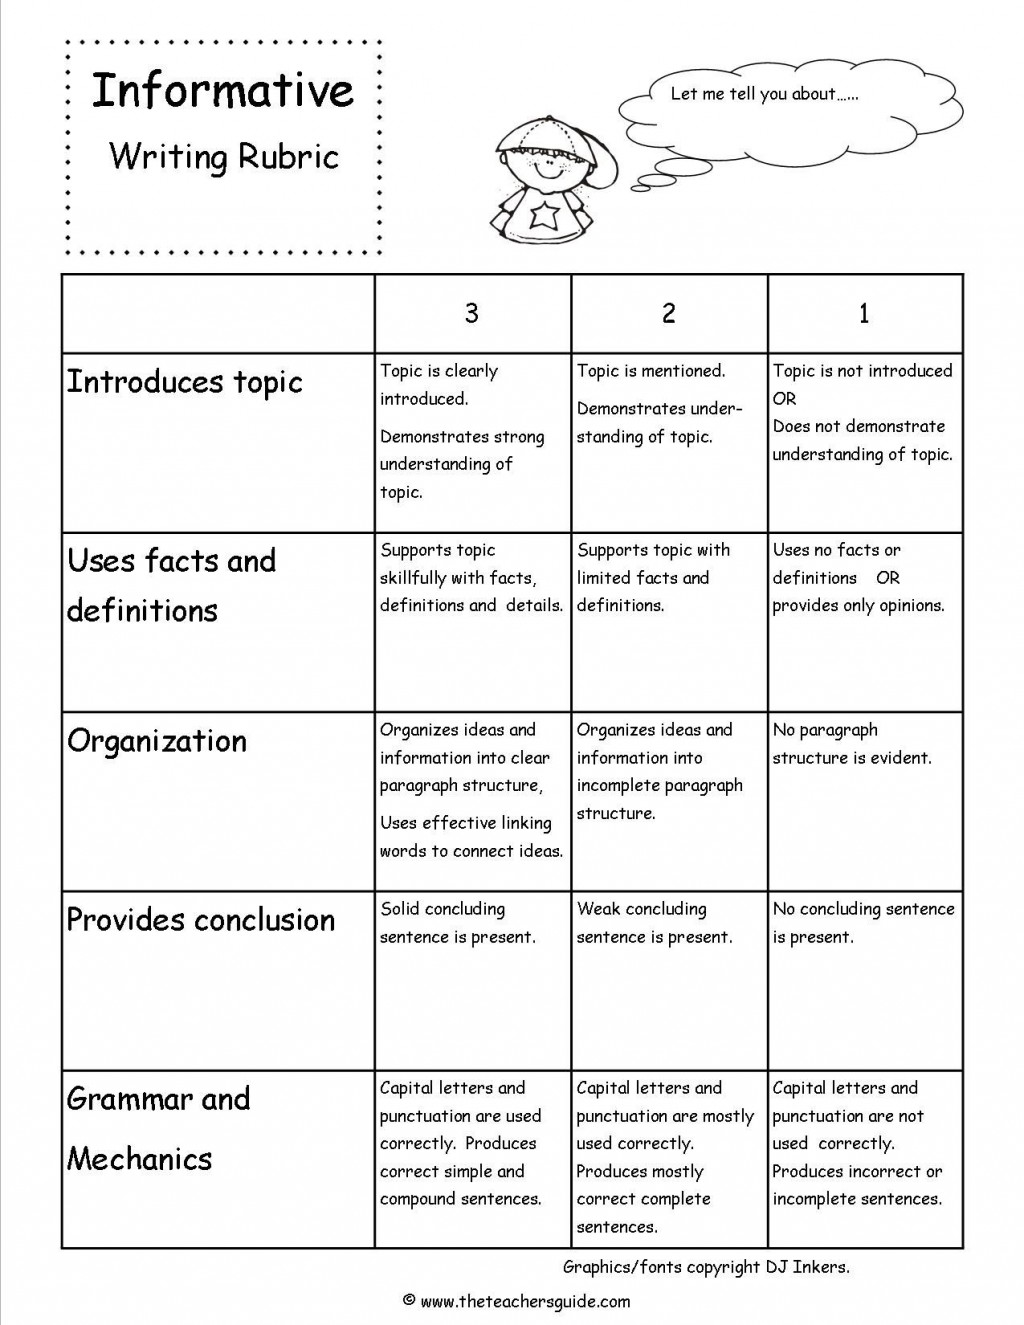 010 Rubrics For Essay Breathtaking Sample Questions Scoring Writing High School Large